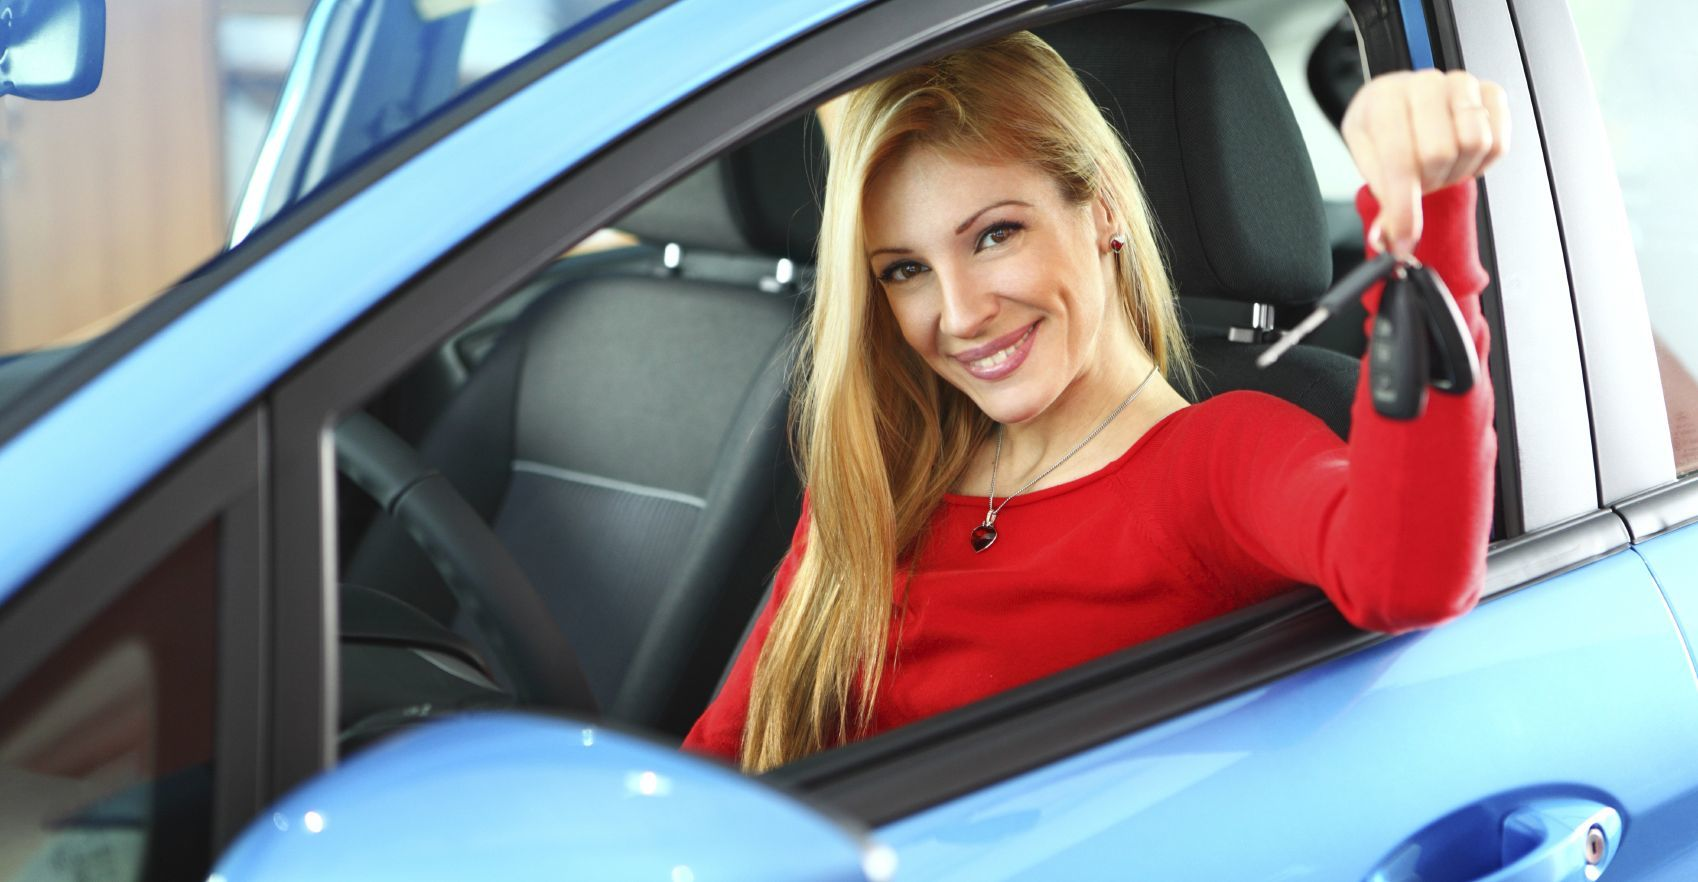 Get Behind the Wheel of Your Dream Car Through the Ease of Financing!